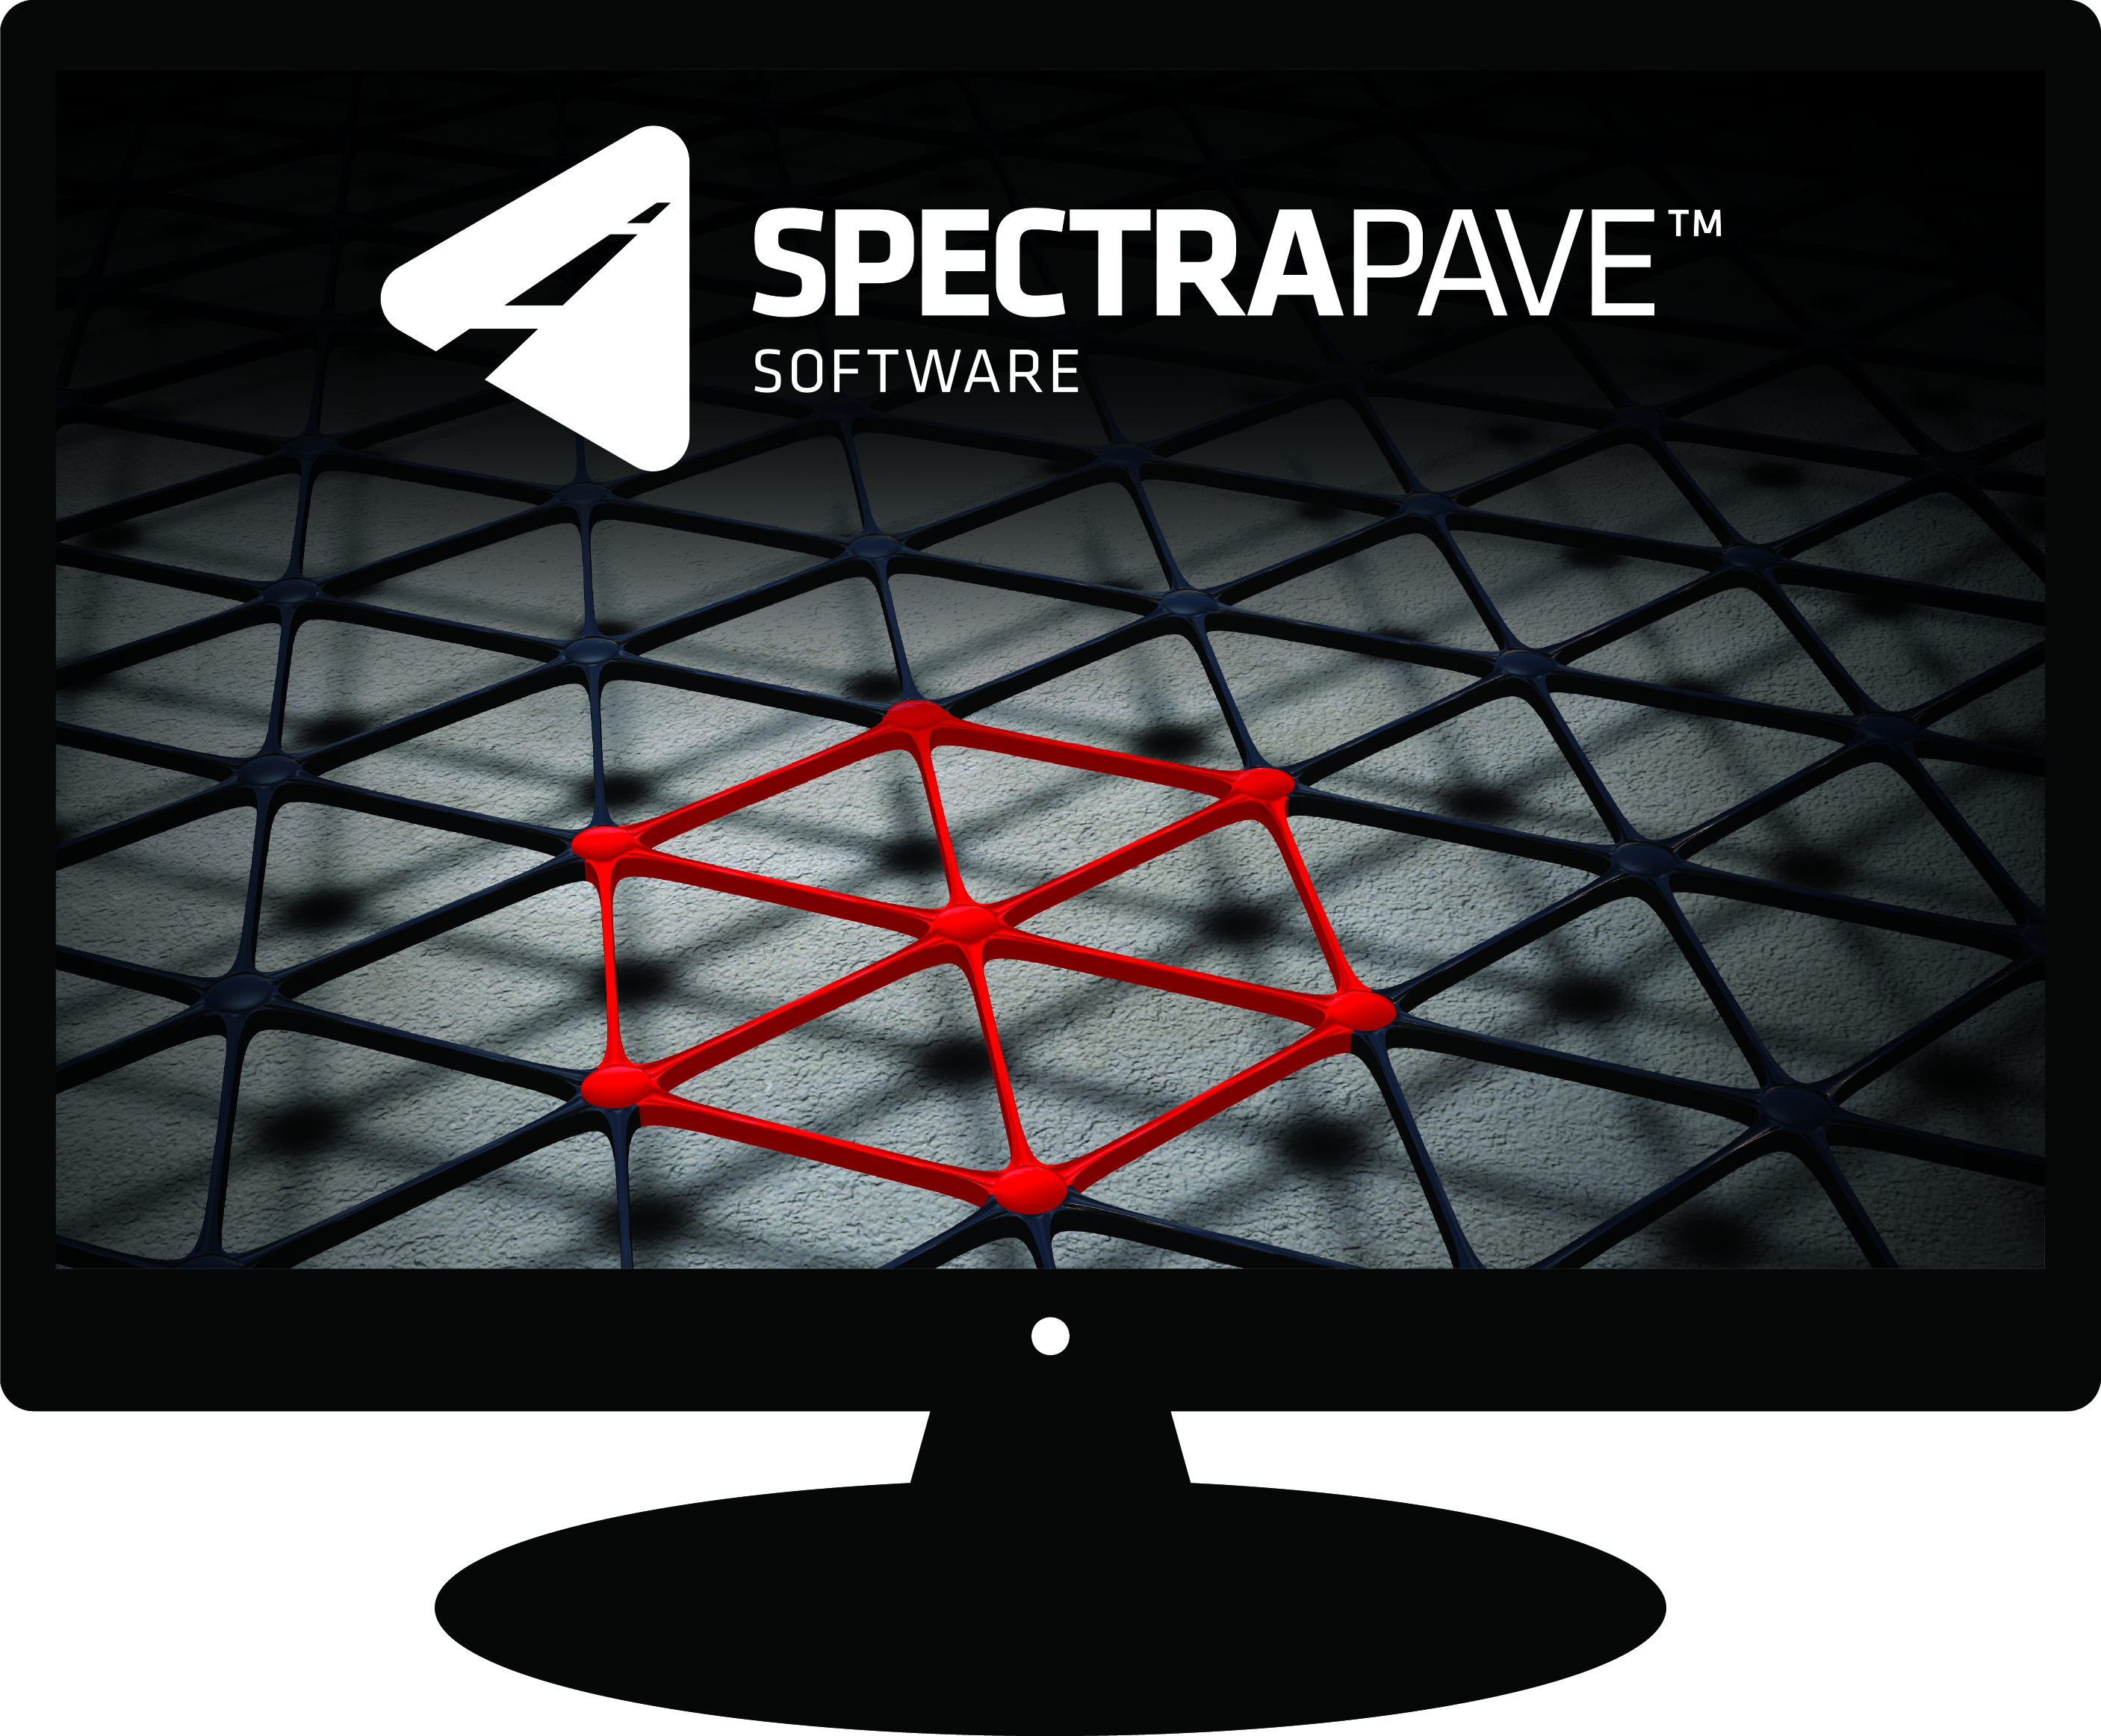 SpectraPave Design Software